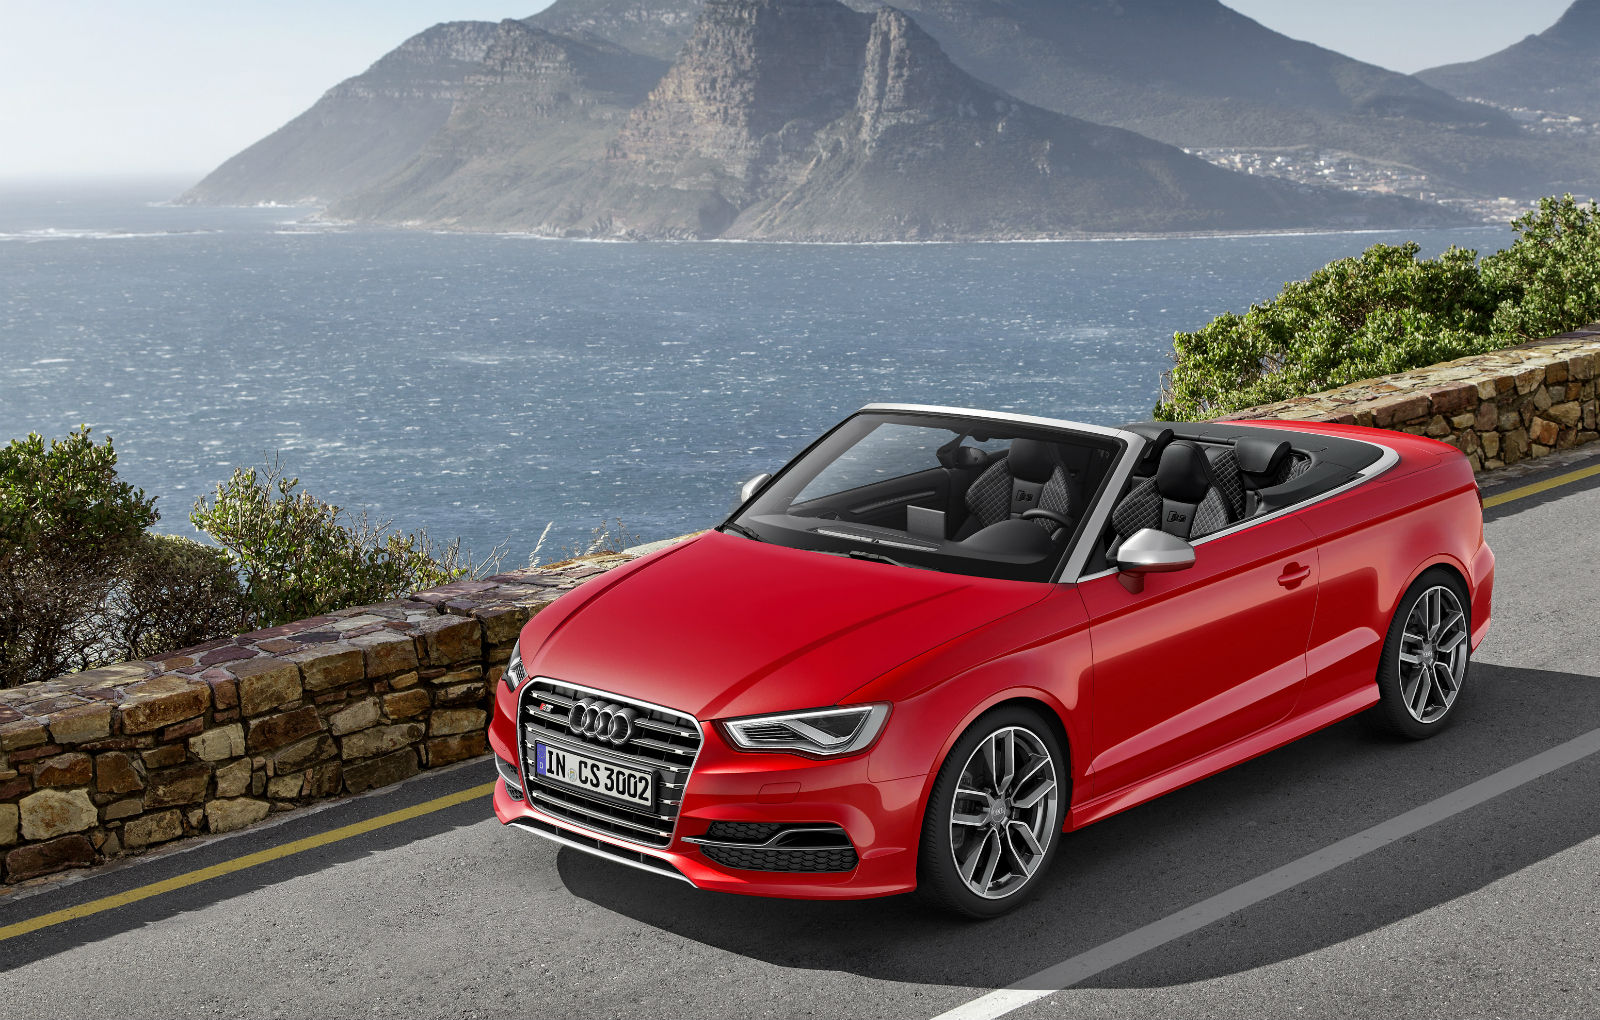 2015 Audi S3 Cabriolet Red Sport Car Wallpaper   HD 1600x1020